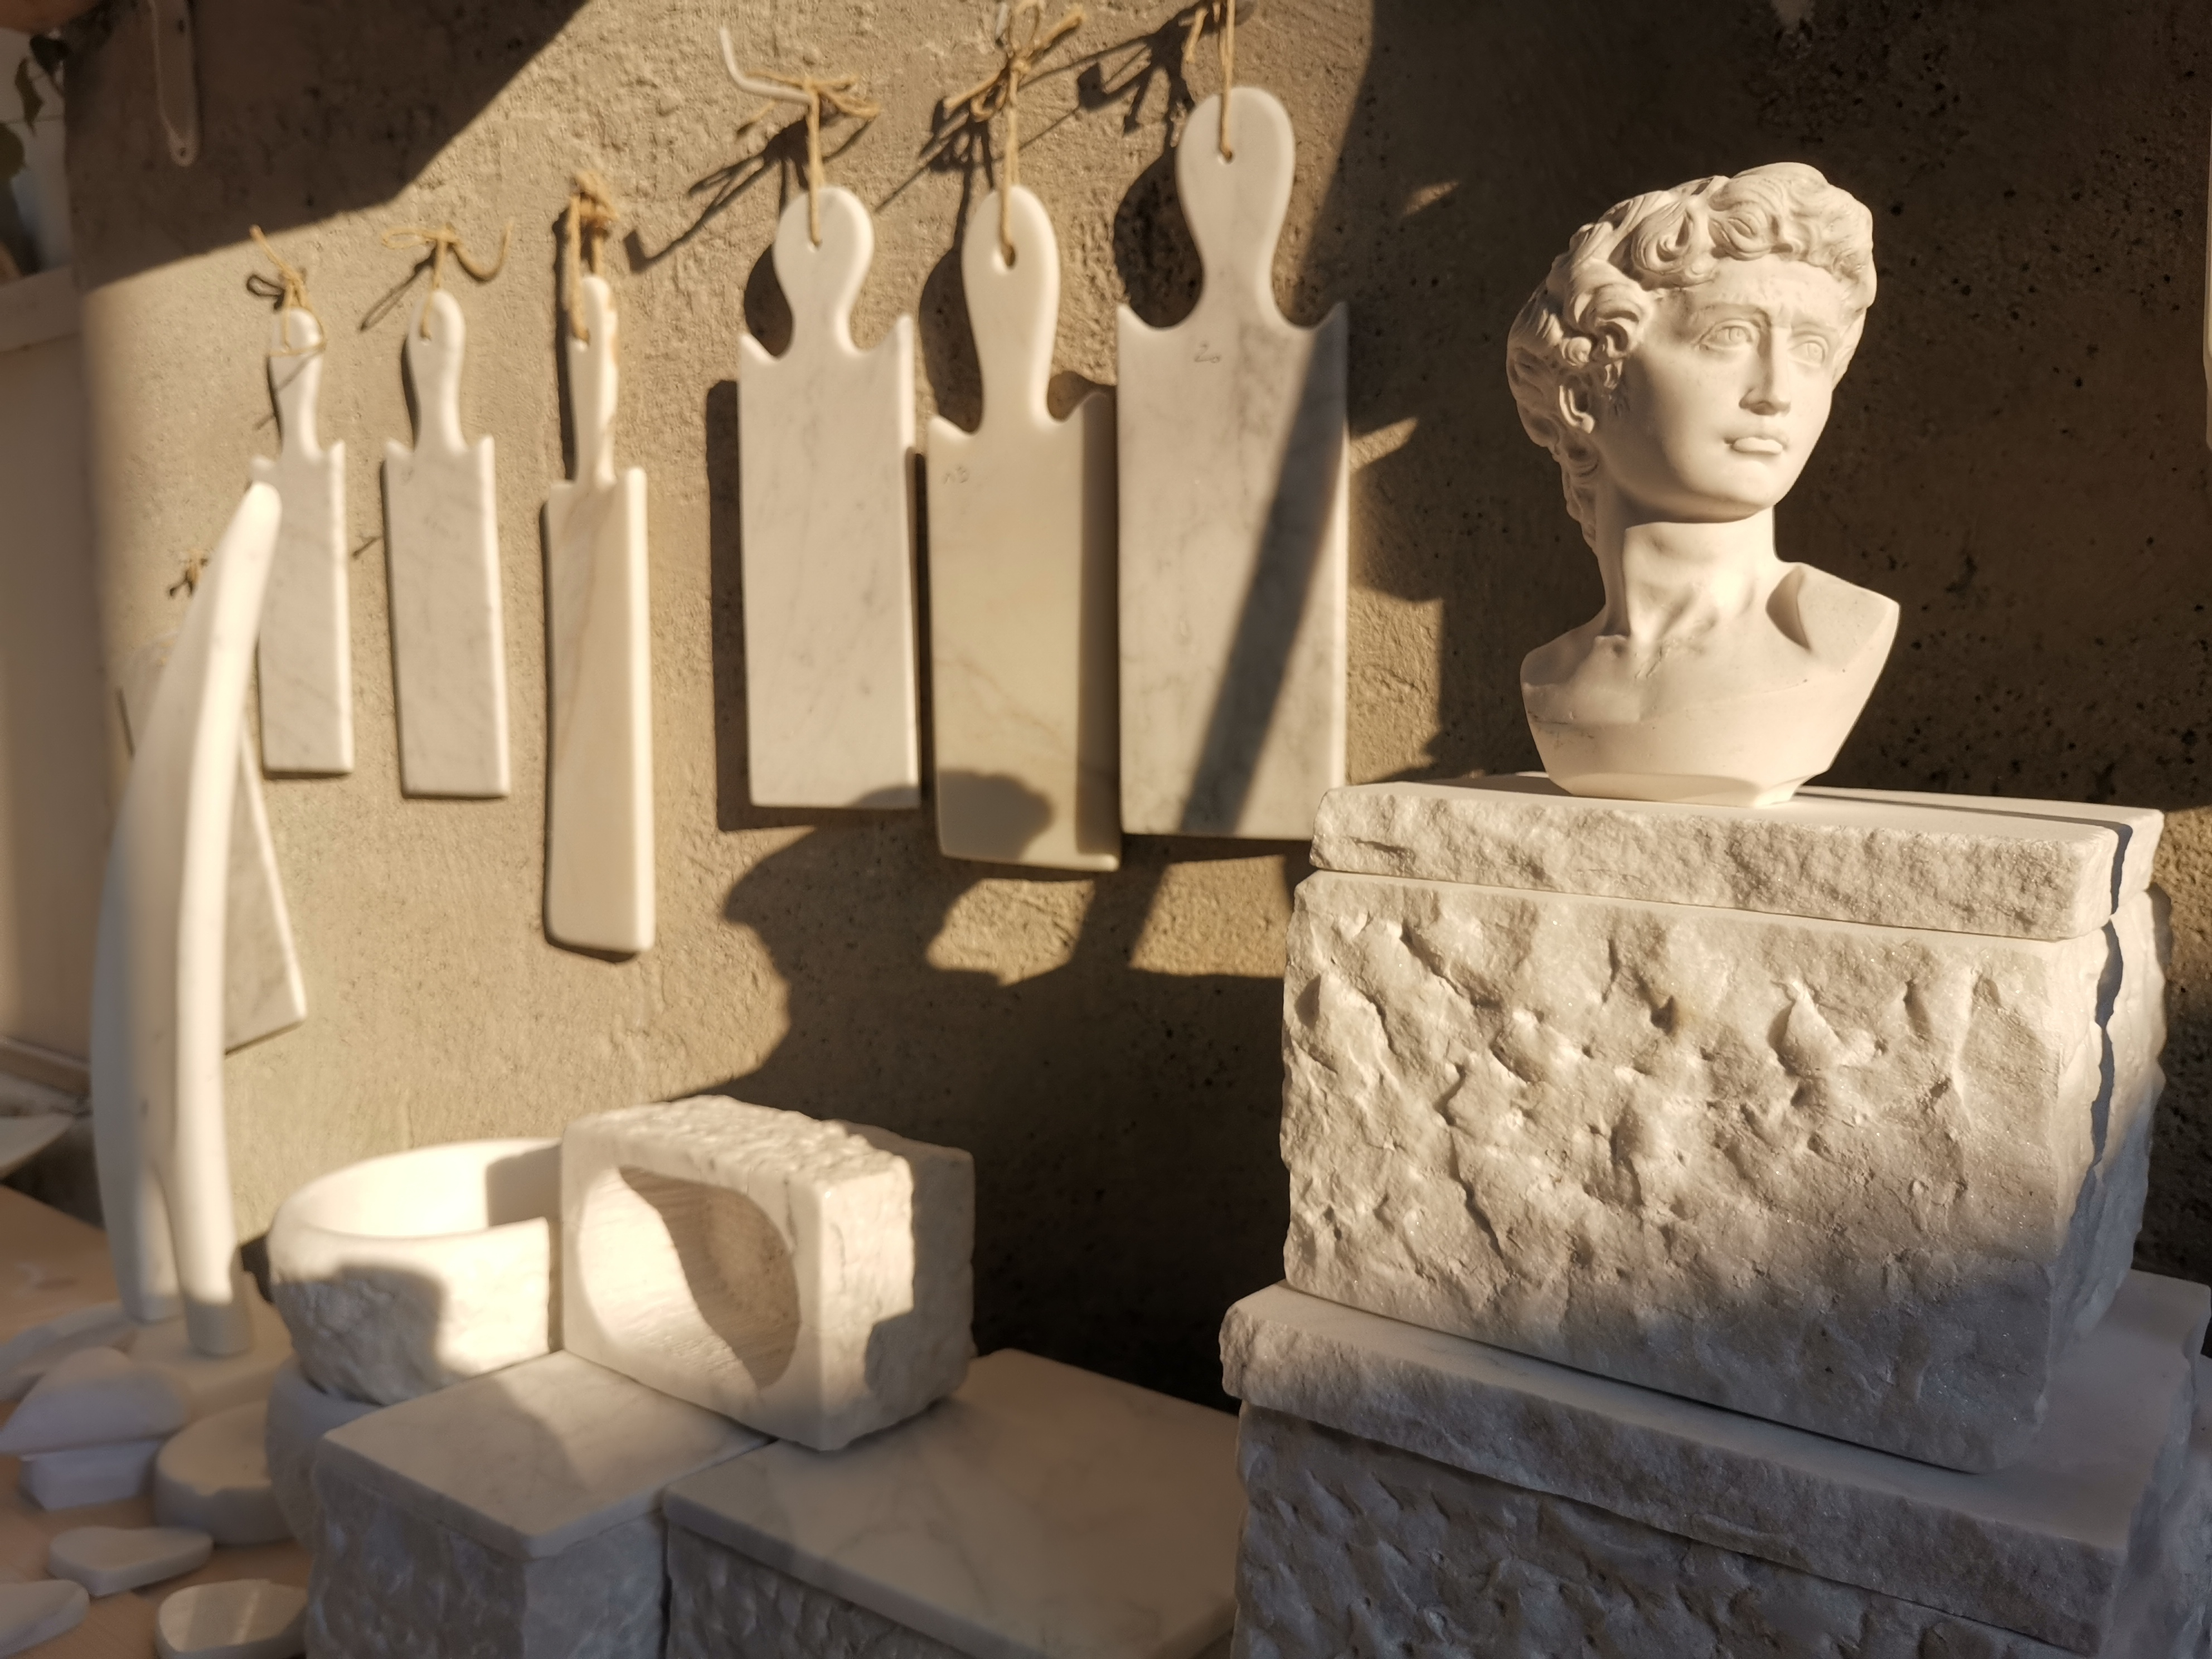 Laboratorio Menconi - sculpture and handicraft made in Carrara